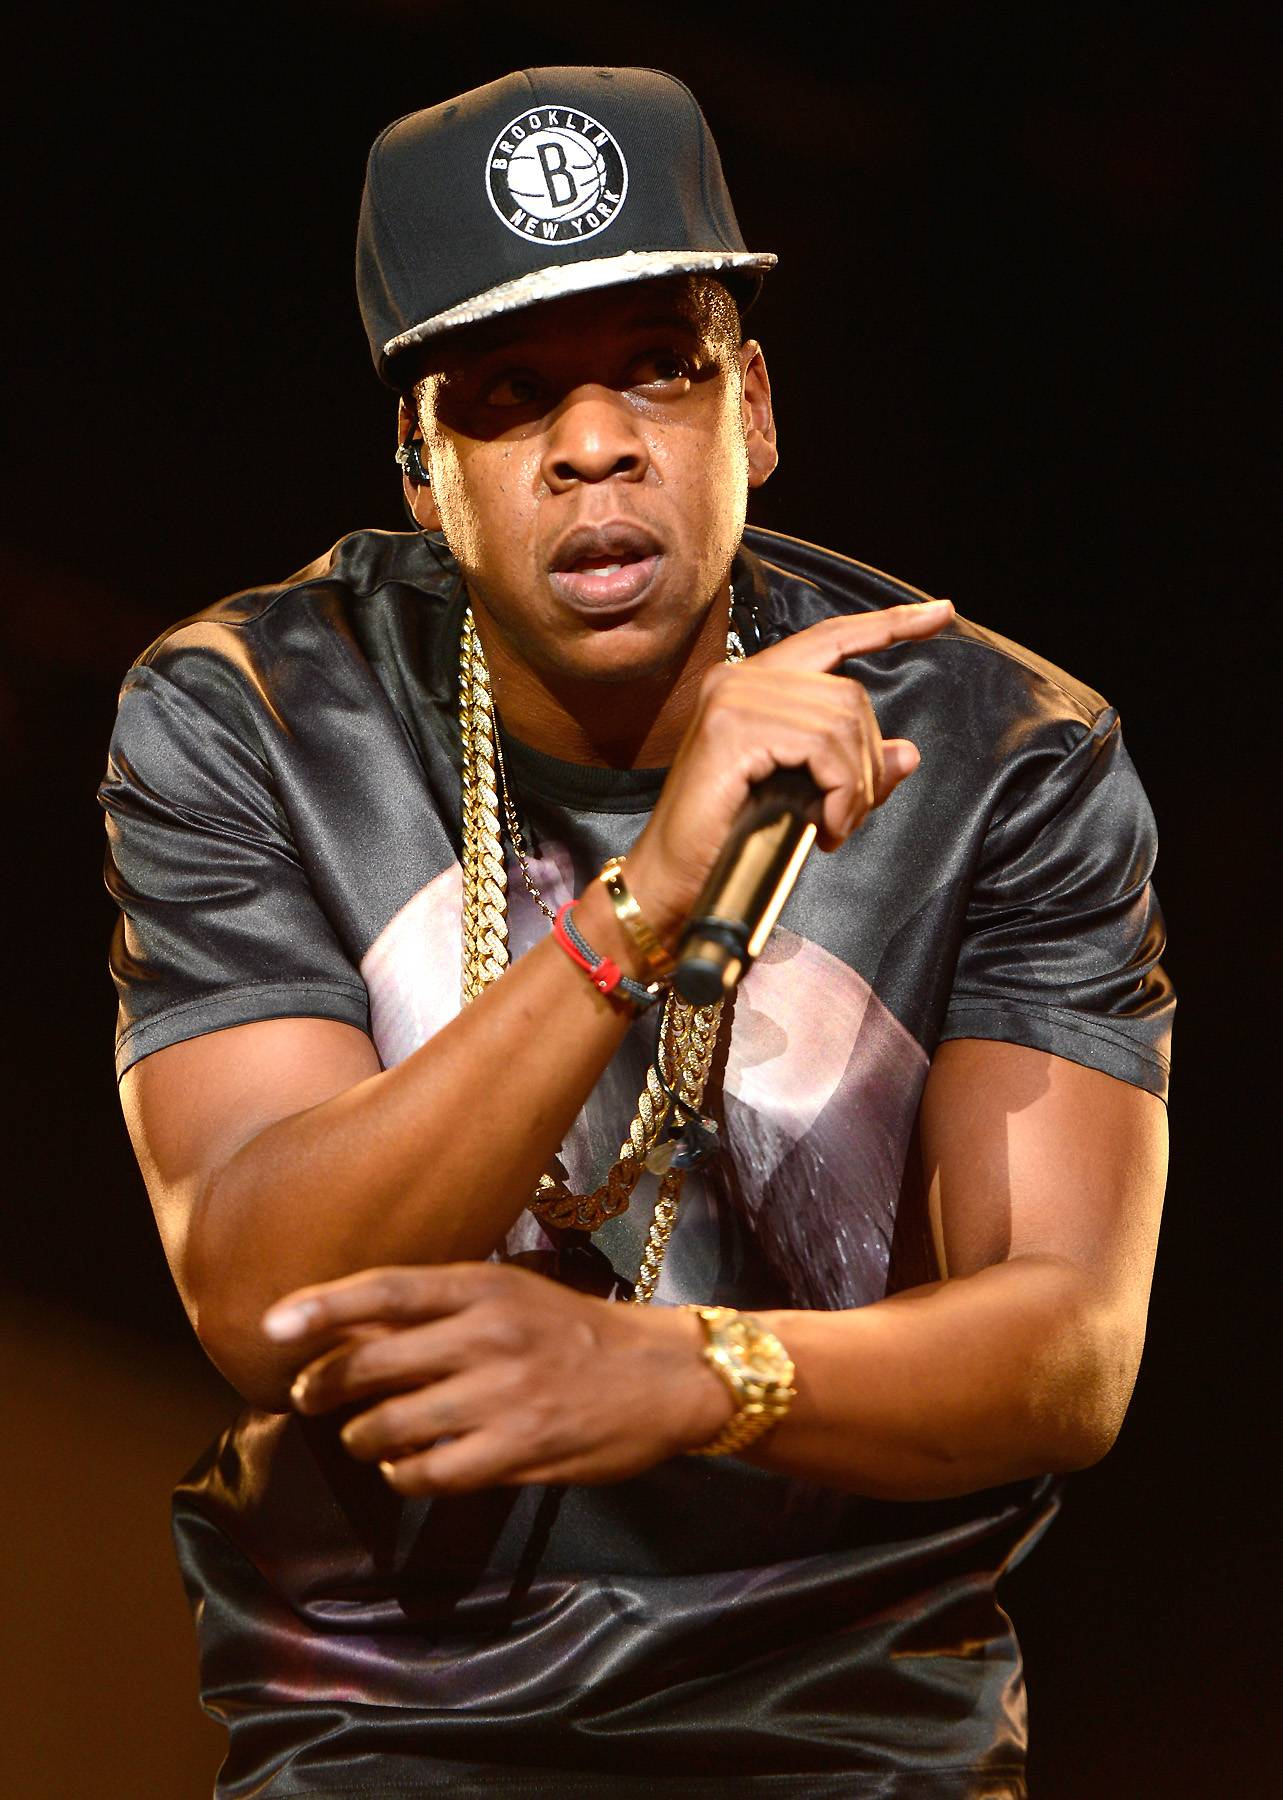 Hustler of the Year - Jay Z - Nearly 20 years after Reasonable Doubt hit, the hustle is alive and well in Jay Z. With his hand in music, sports, clothing and other ventures, the Roc Nation CEO continues to ink the blueprint for transcending boundaries. (Photo: Kevin Mazur/WireImage)